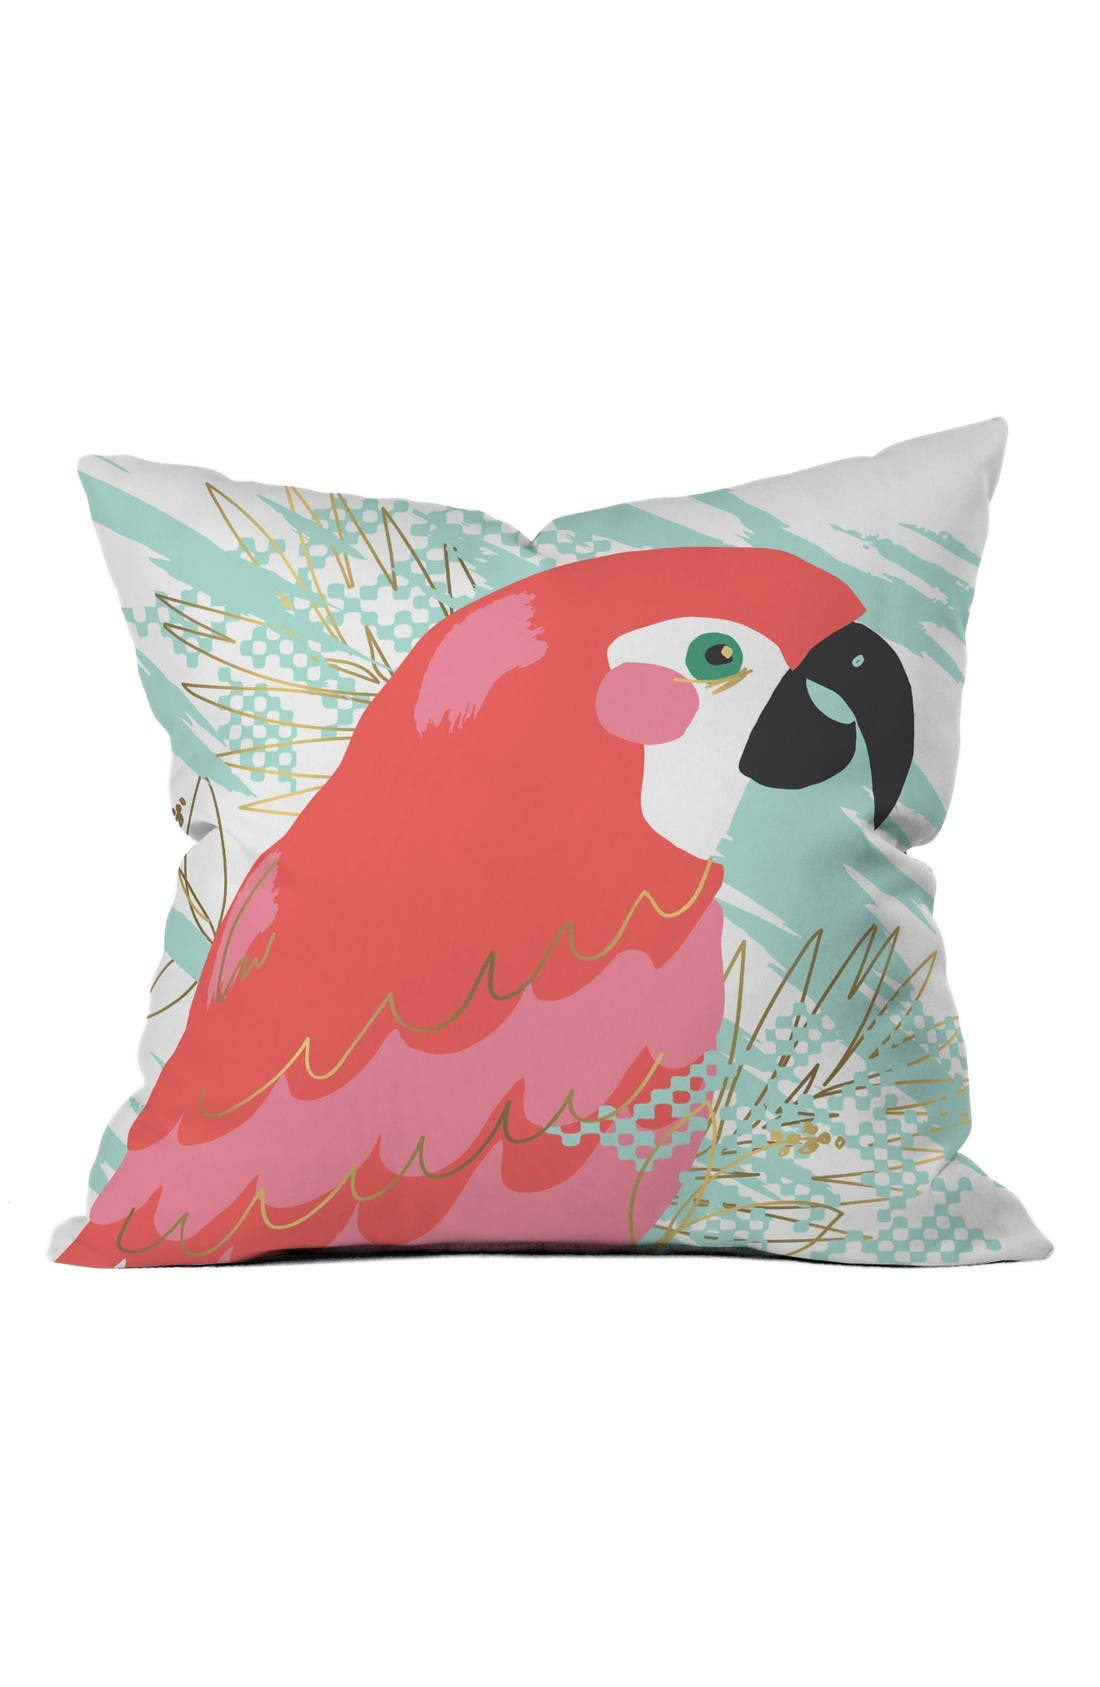 On The Wings Pillow,                         Main,                         color, Pink/ Teal